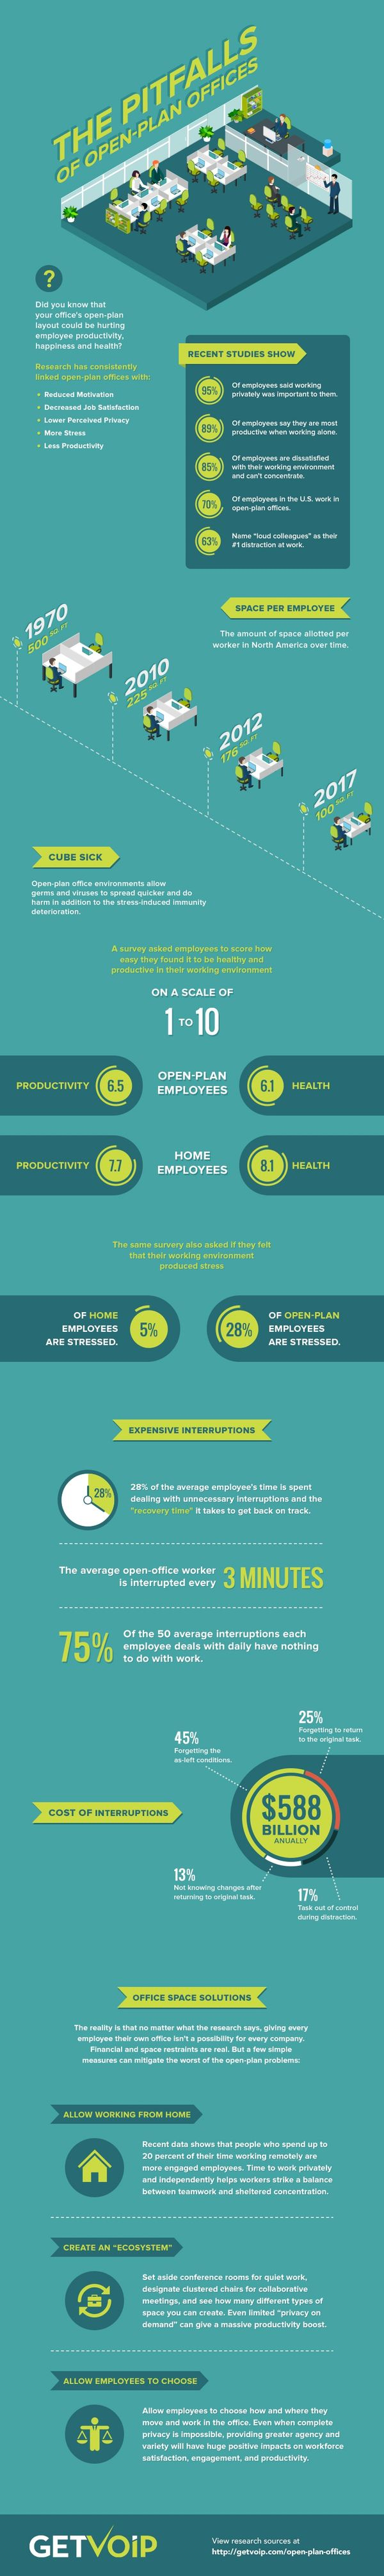 Open-plan-offices-infographic